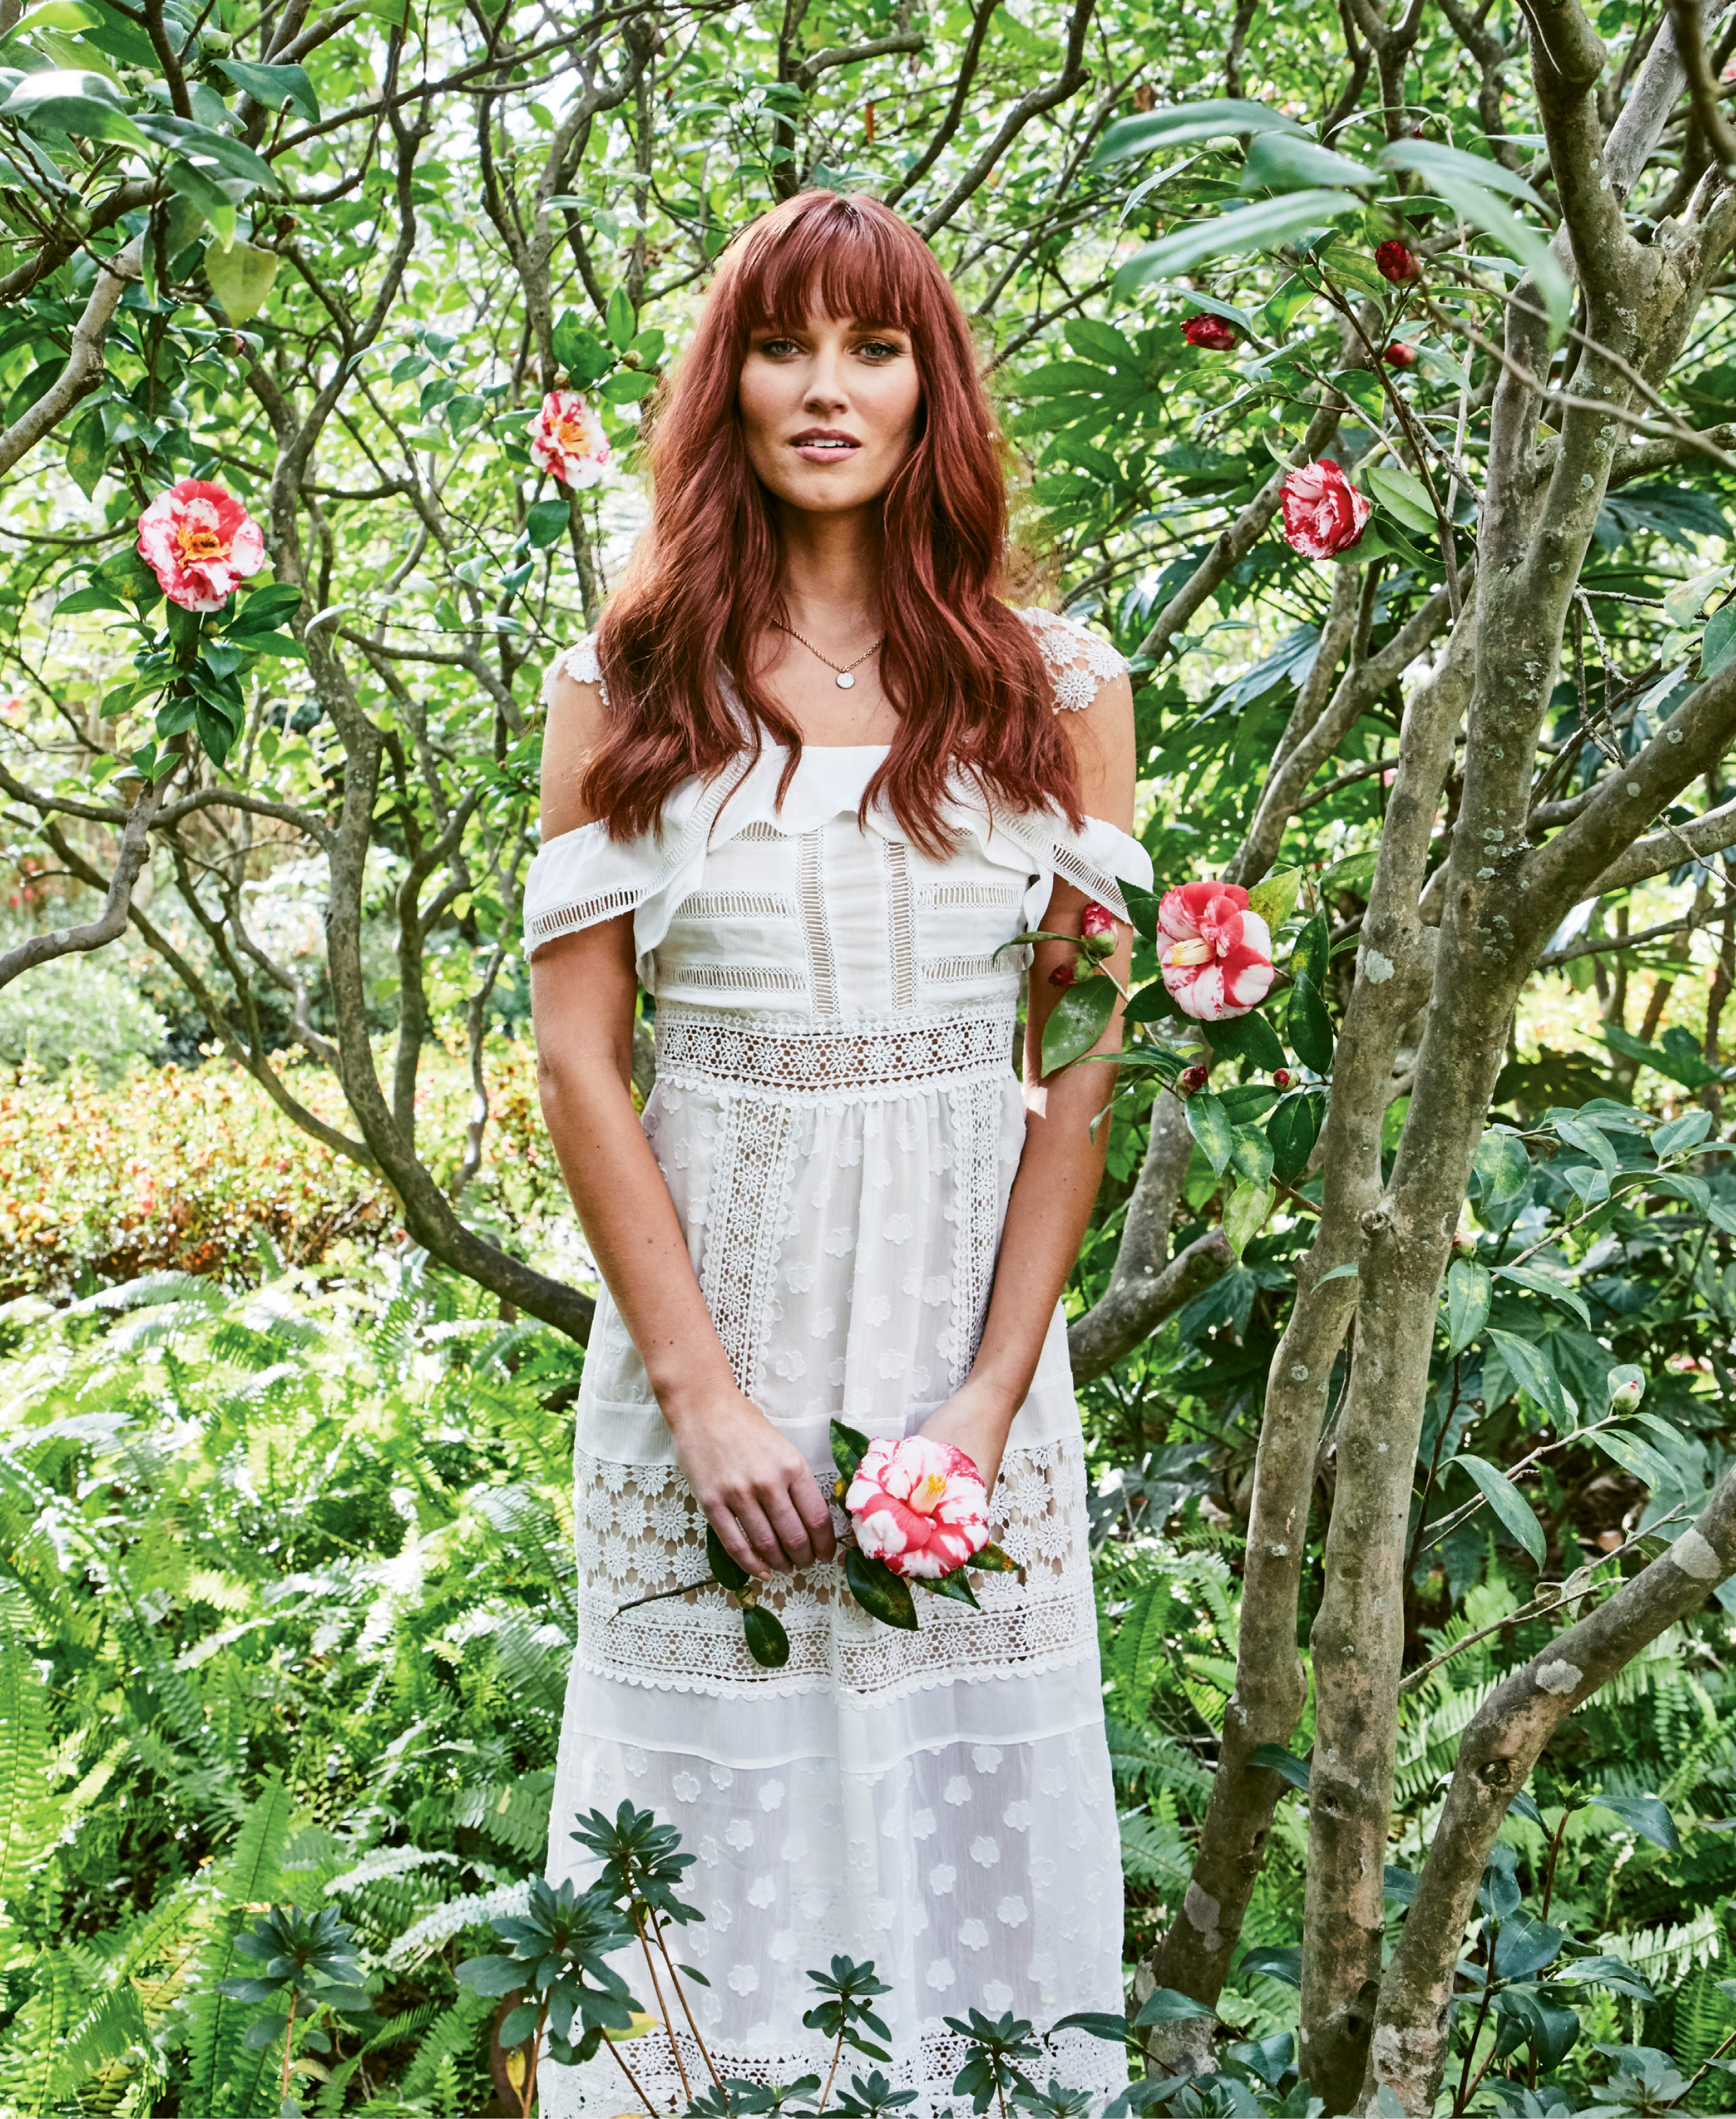 Handpicked: L'Atiste by Amy eyelet dress